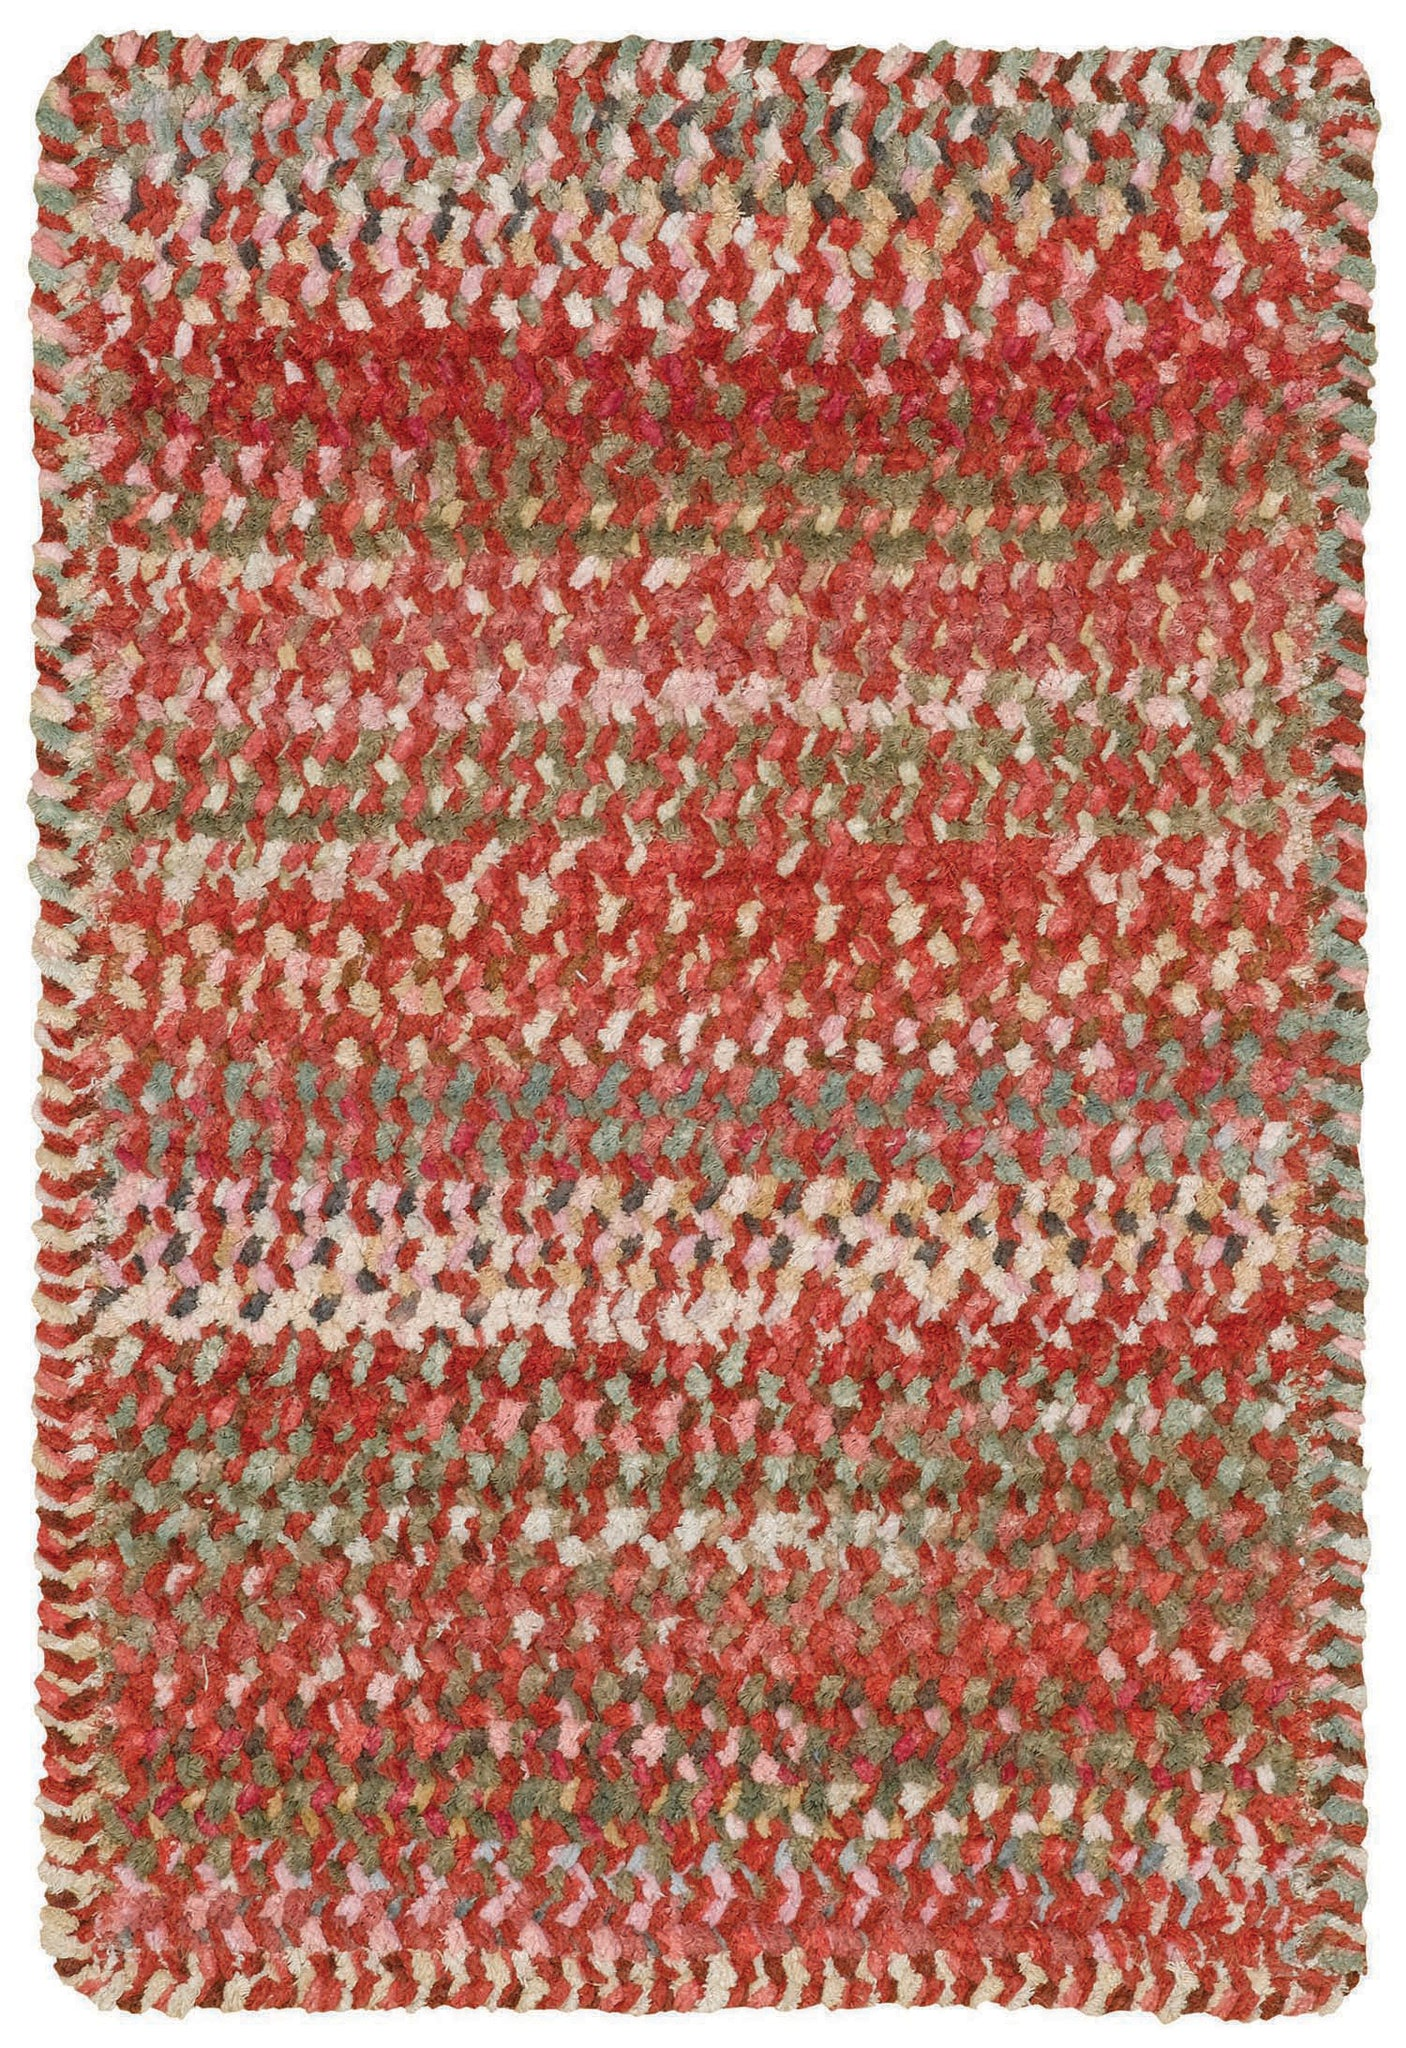 Capel Ocracoke 0425 Pink 525 Area Rug main image